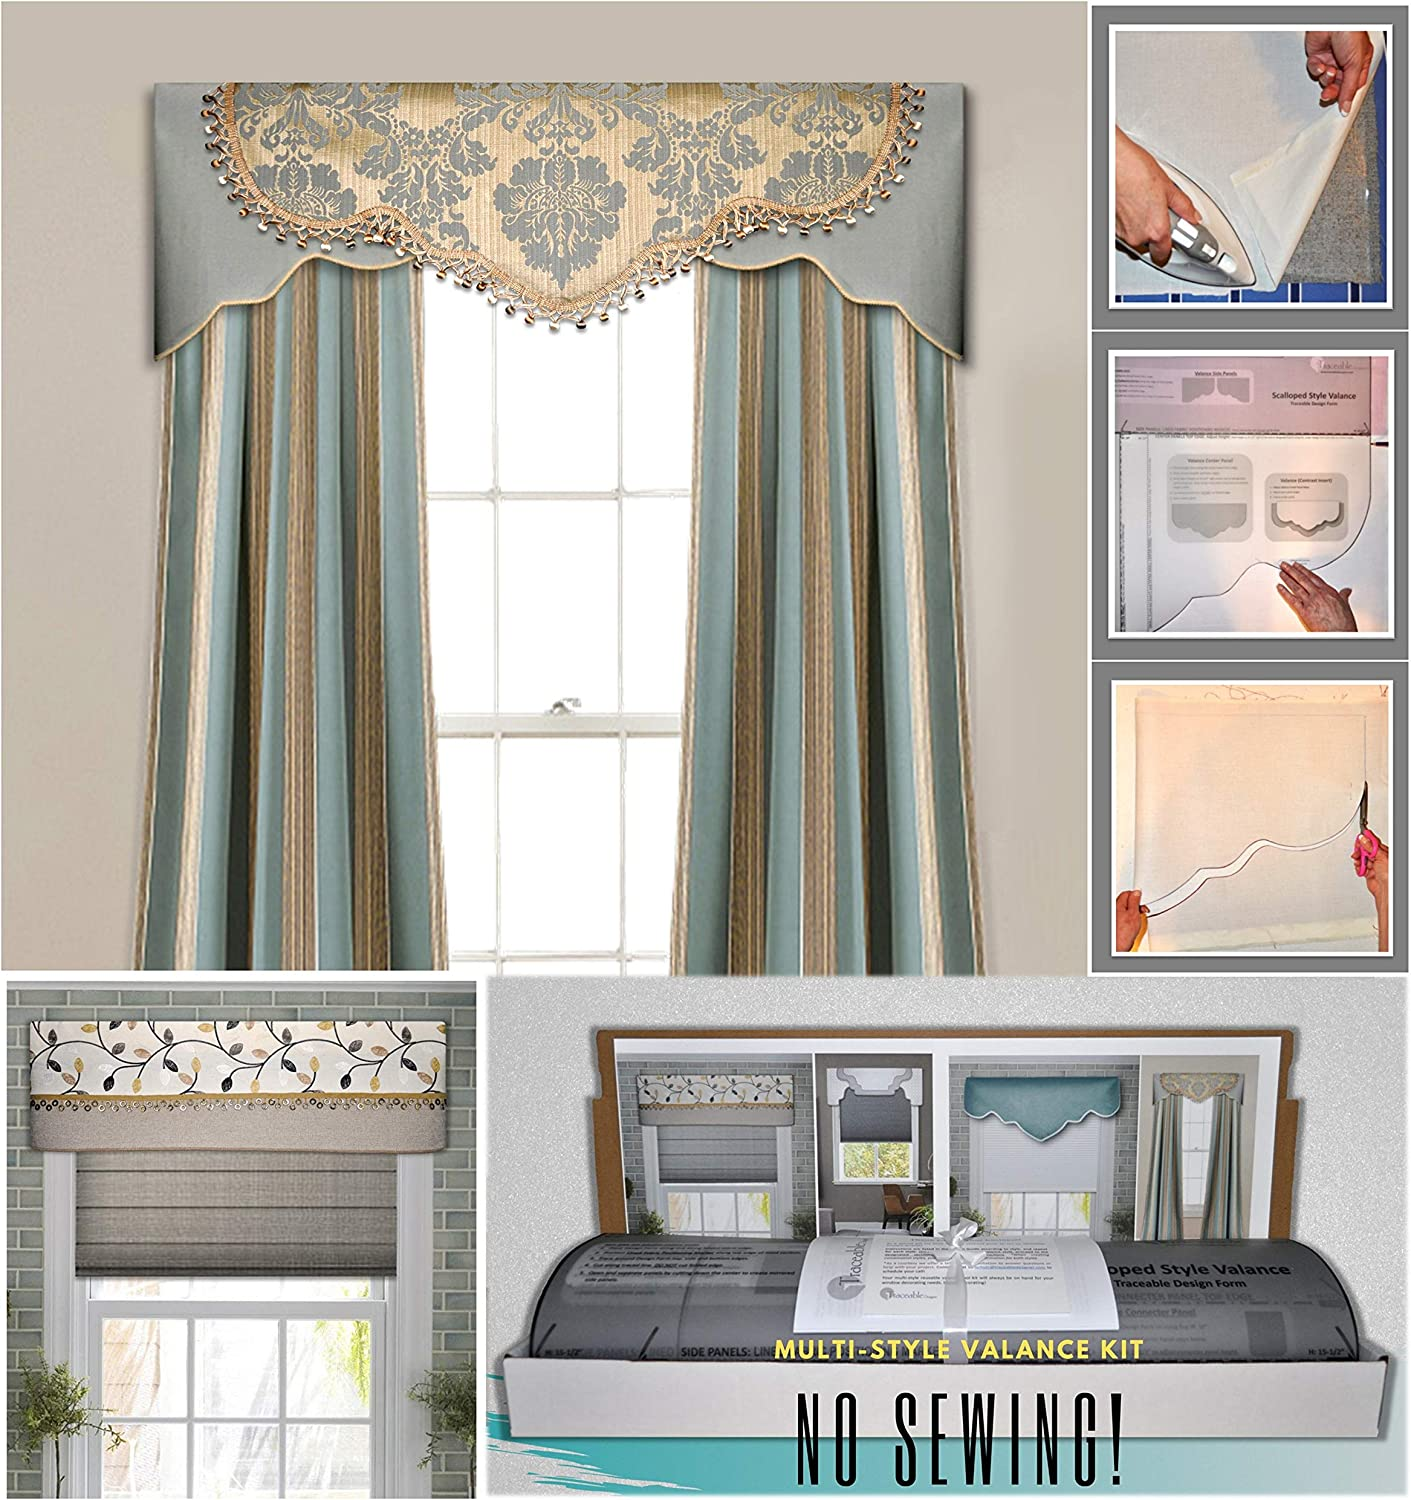 Amazon Com Diy Valance Kit No Sewing Three Styles In One Kit Fit All Window Sizes Including Bay Windows Reusable Pattern No Sew Room Decor Bedroom Living Room Dining Room Kitchen Curtain Cornice